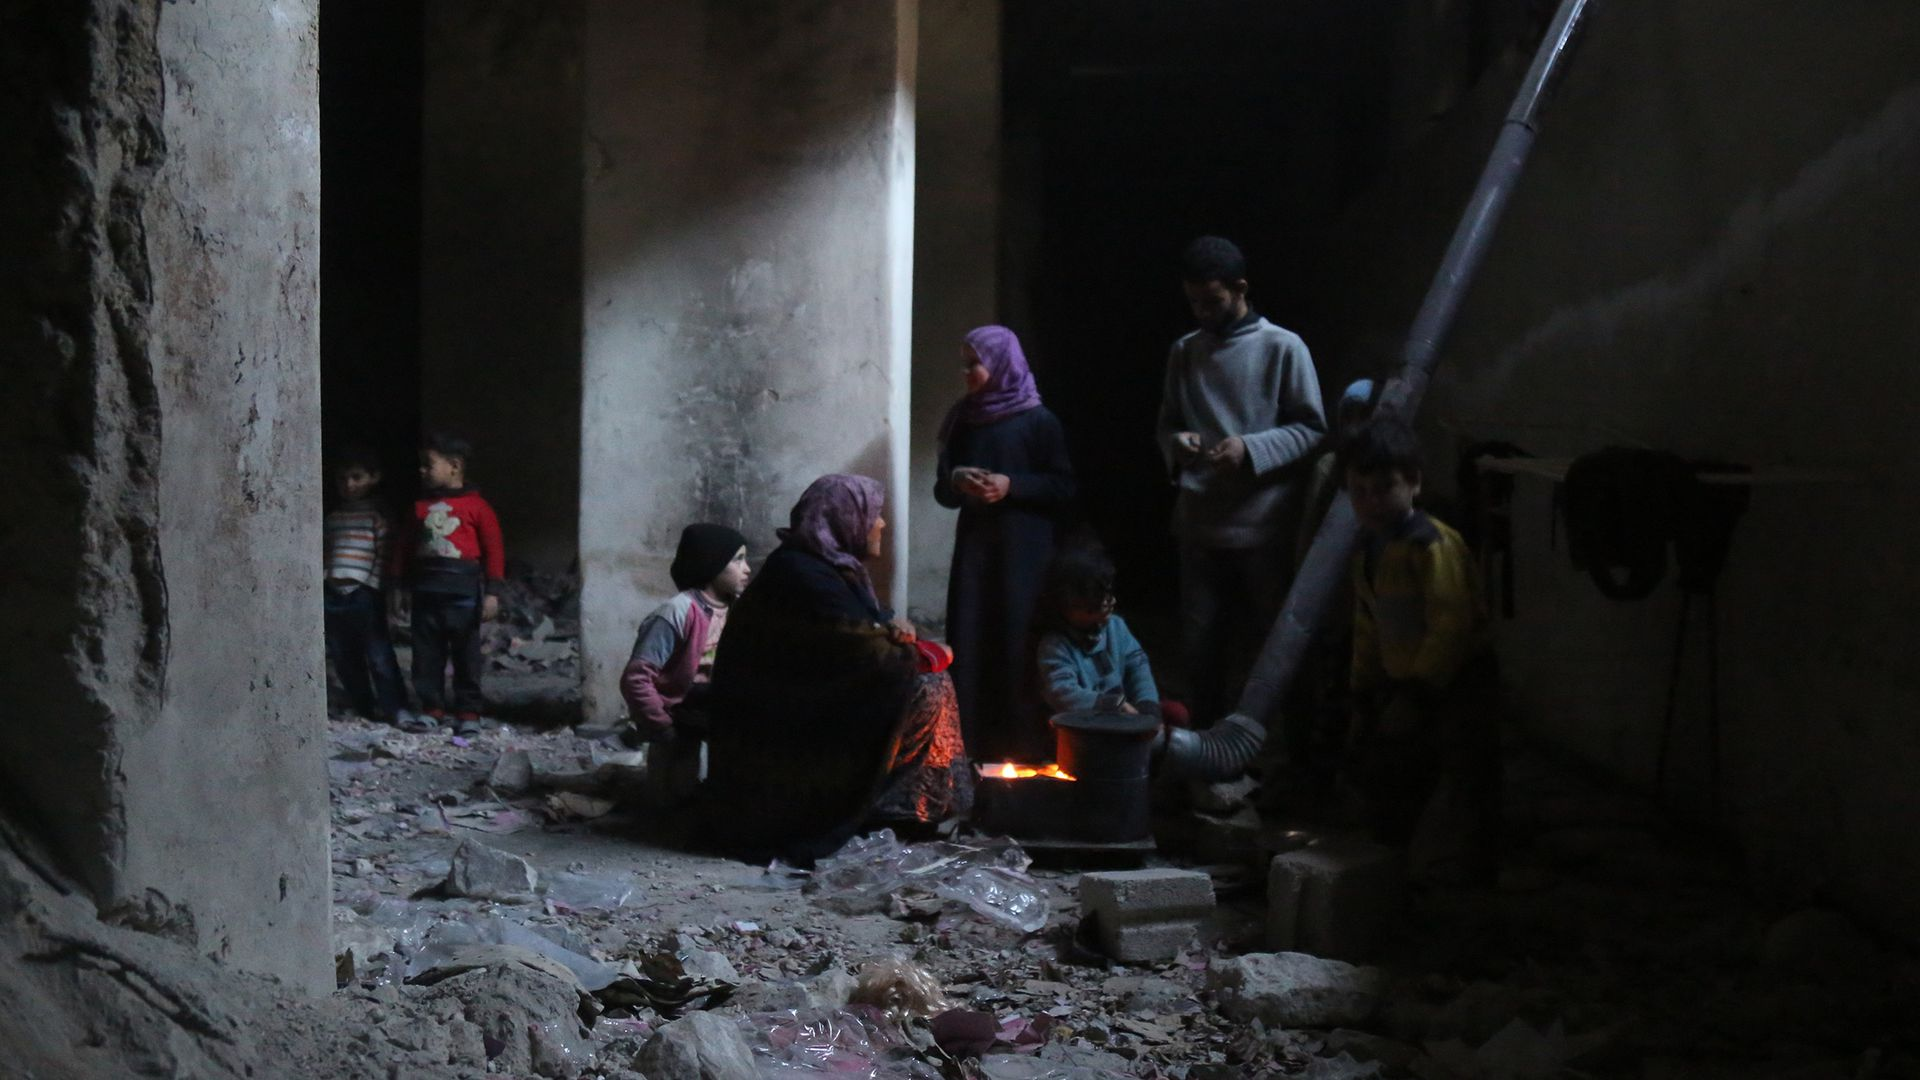 Syrians in basement of bombed-out building